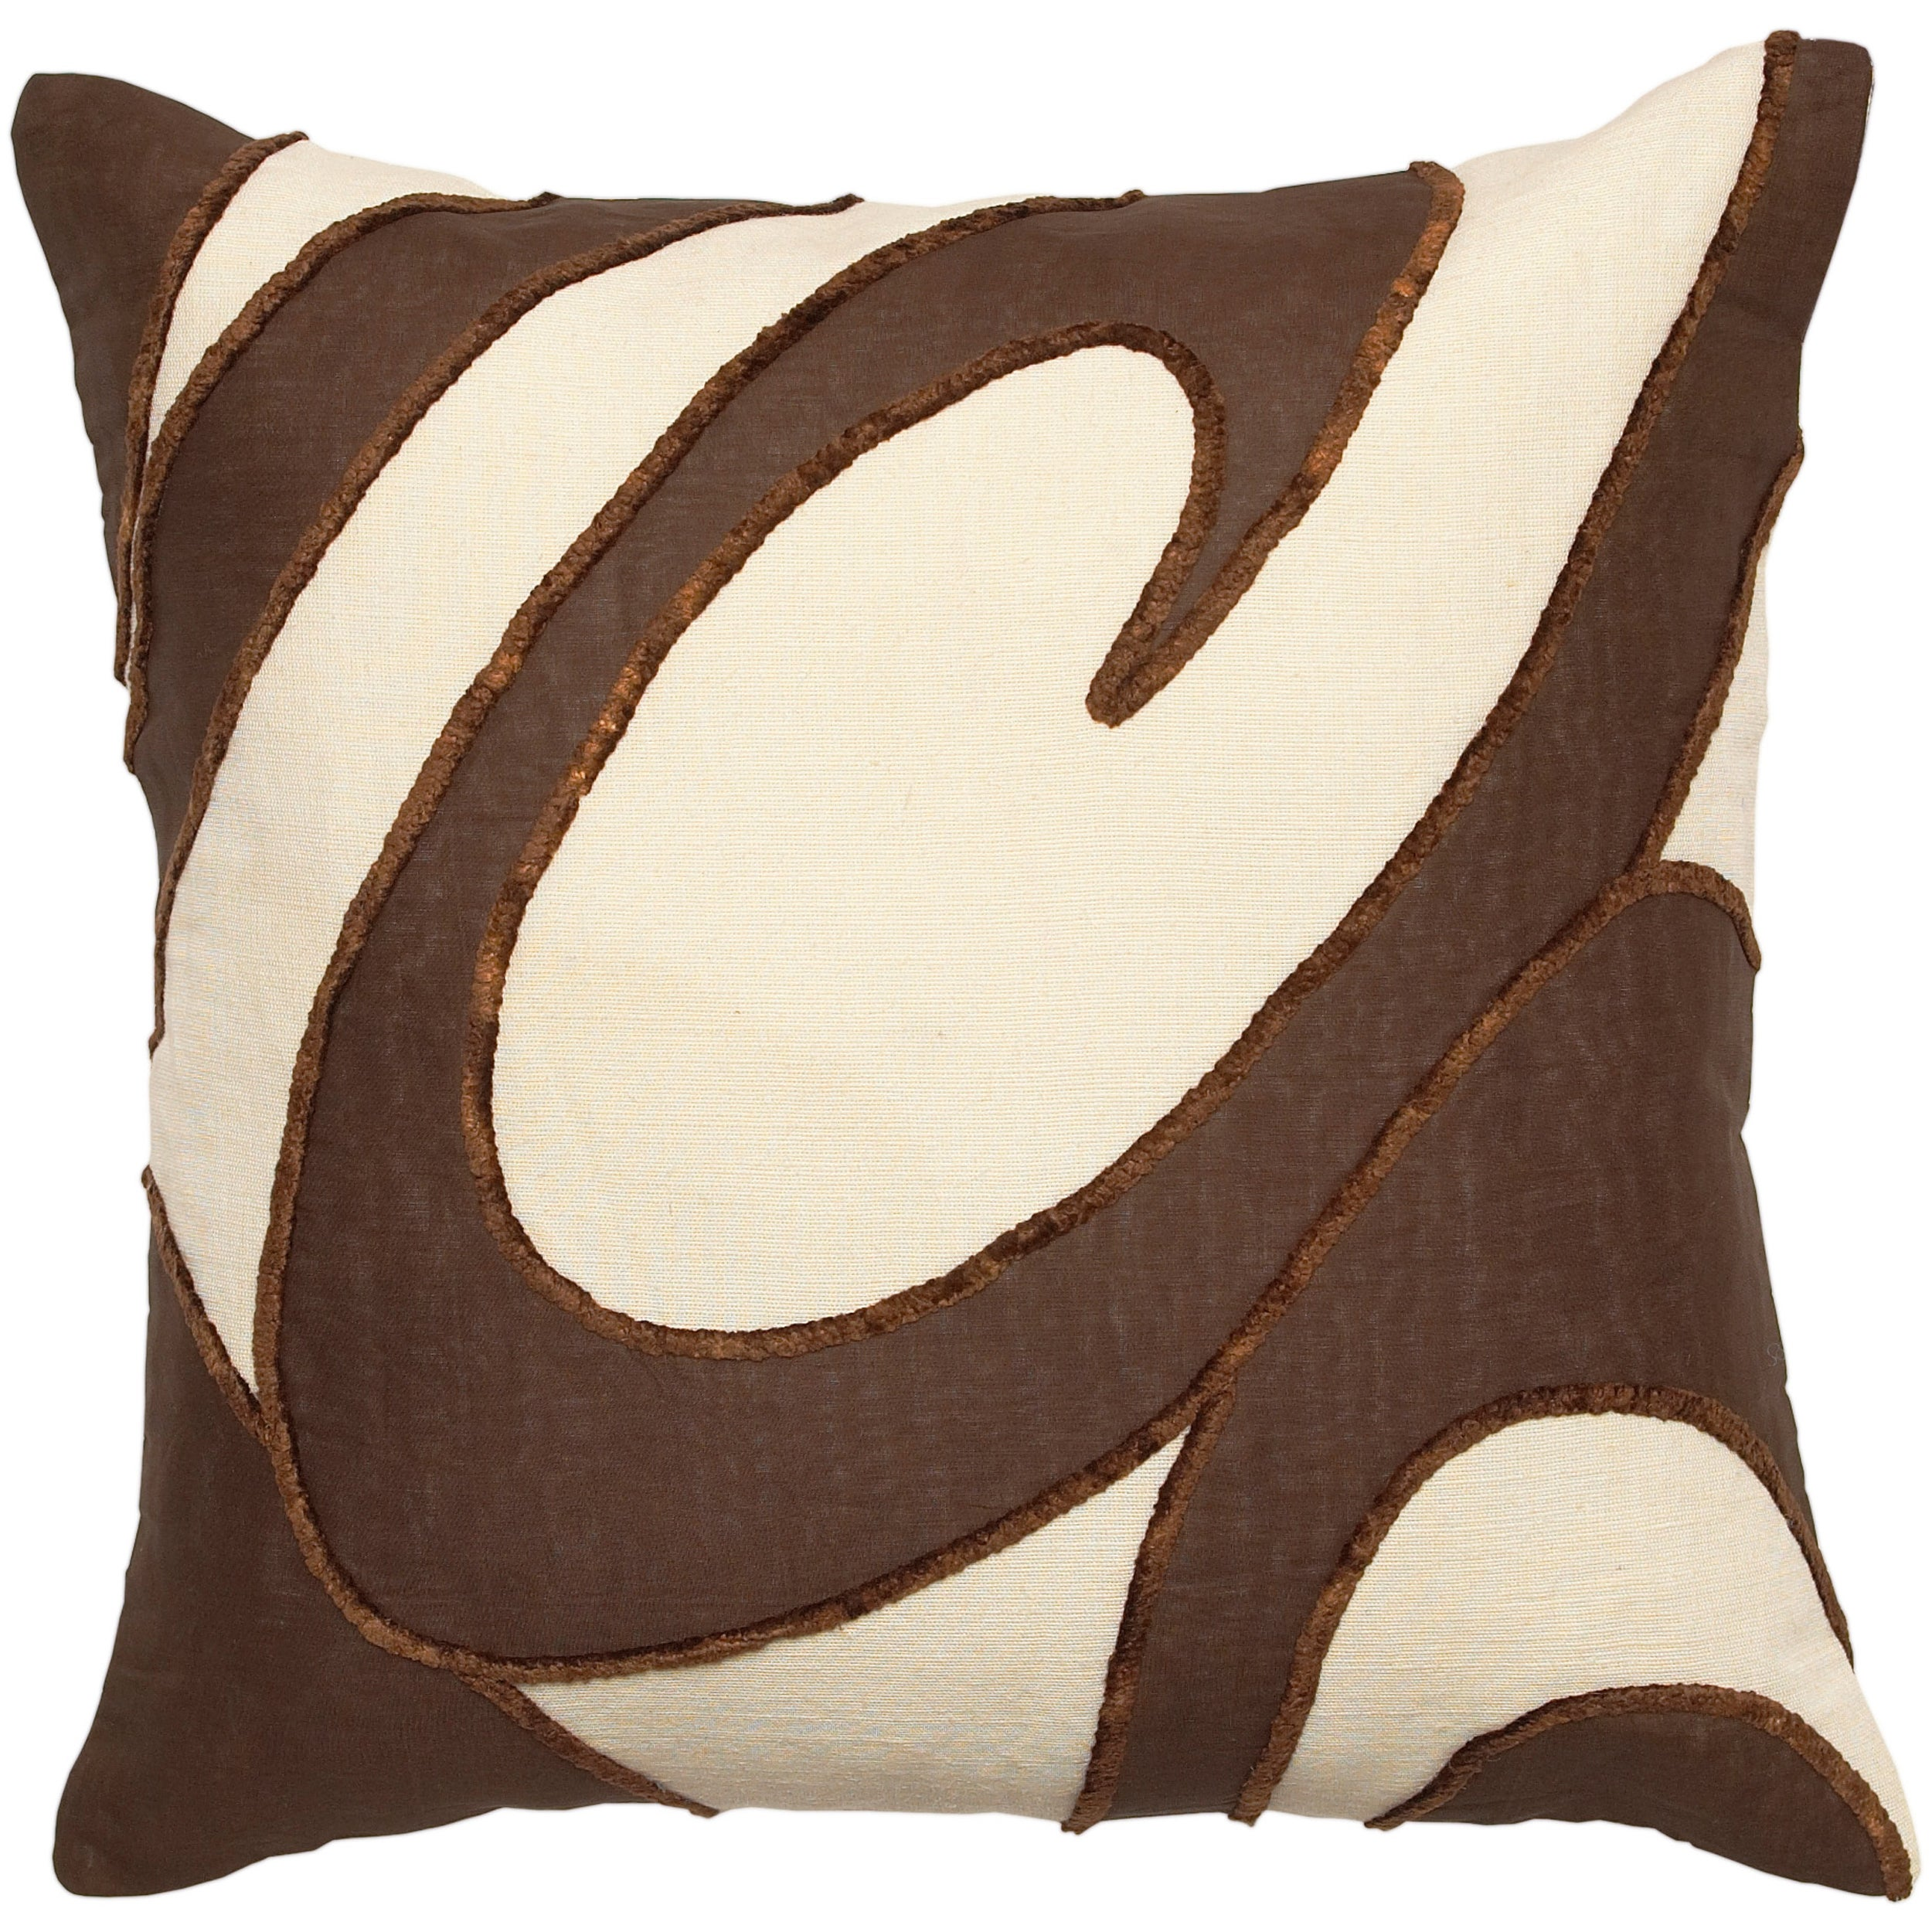 Bouy Chocolate Cream Decorative Pillow Free Shipping On